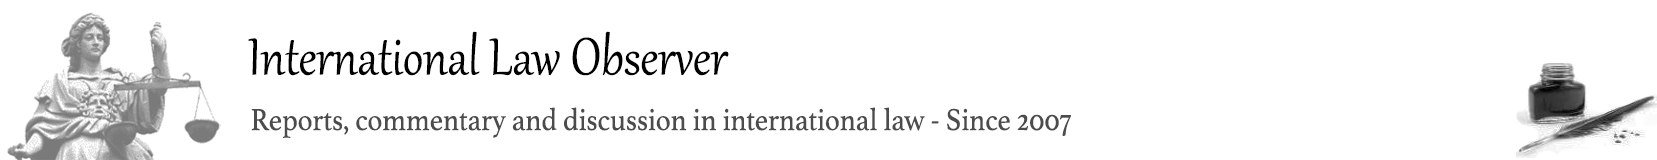 International Law Observer